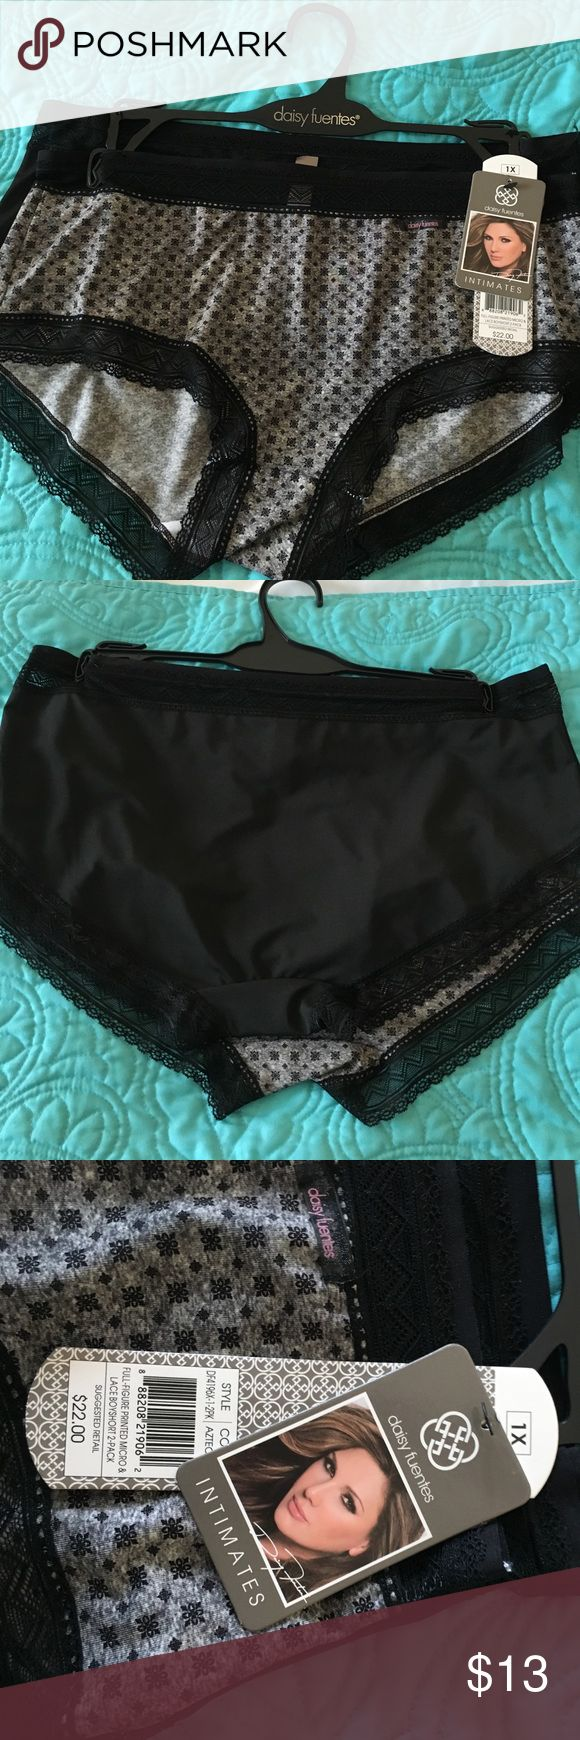 NWT DAISY FUENTES 1X lace trim panties. New! NWT DAISY FUENTES 1X lace trim panties. Gray and black print and solid black. Silky poly spandex. Retail $22 Daisy Fuentes Intimates & Sleepwear Panties